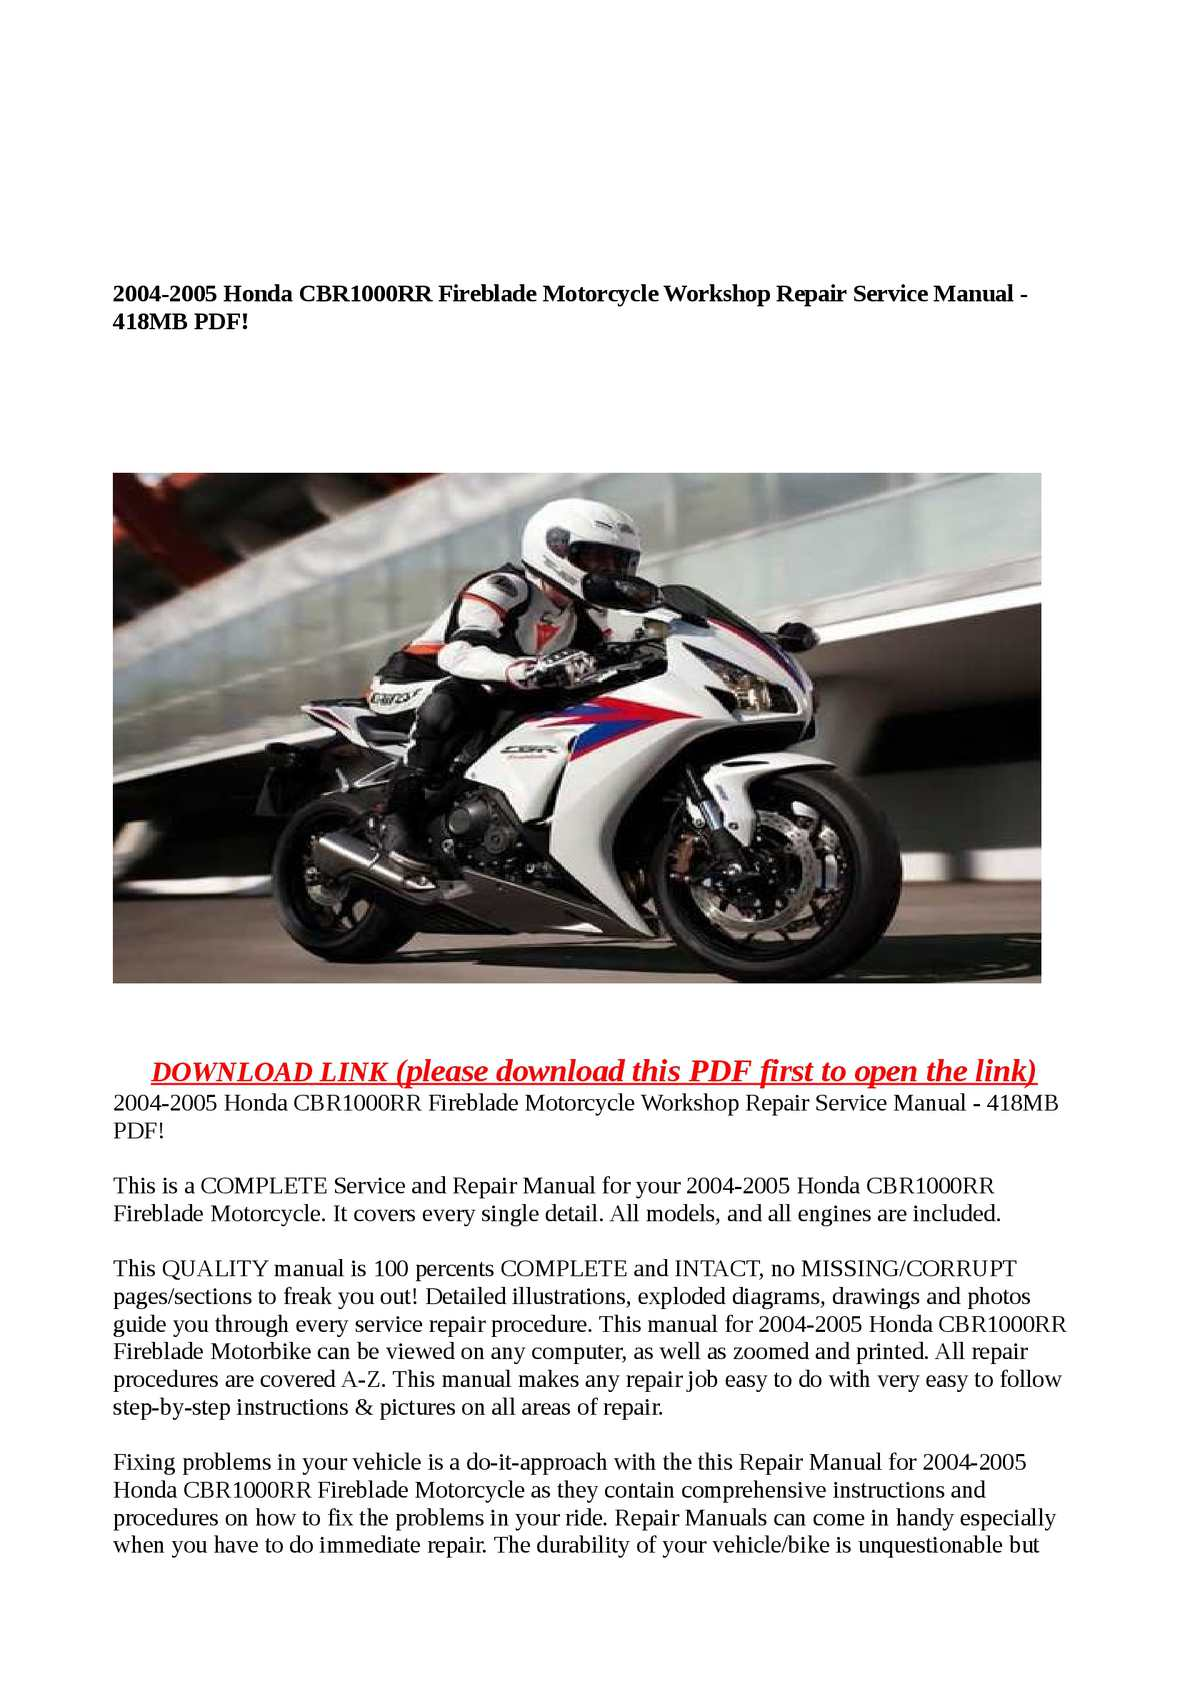 2005 honda cbr1000rr service manual free download enthusiast